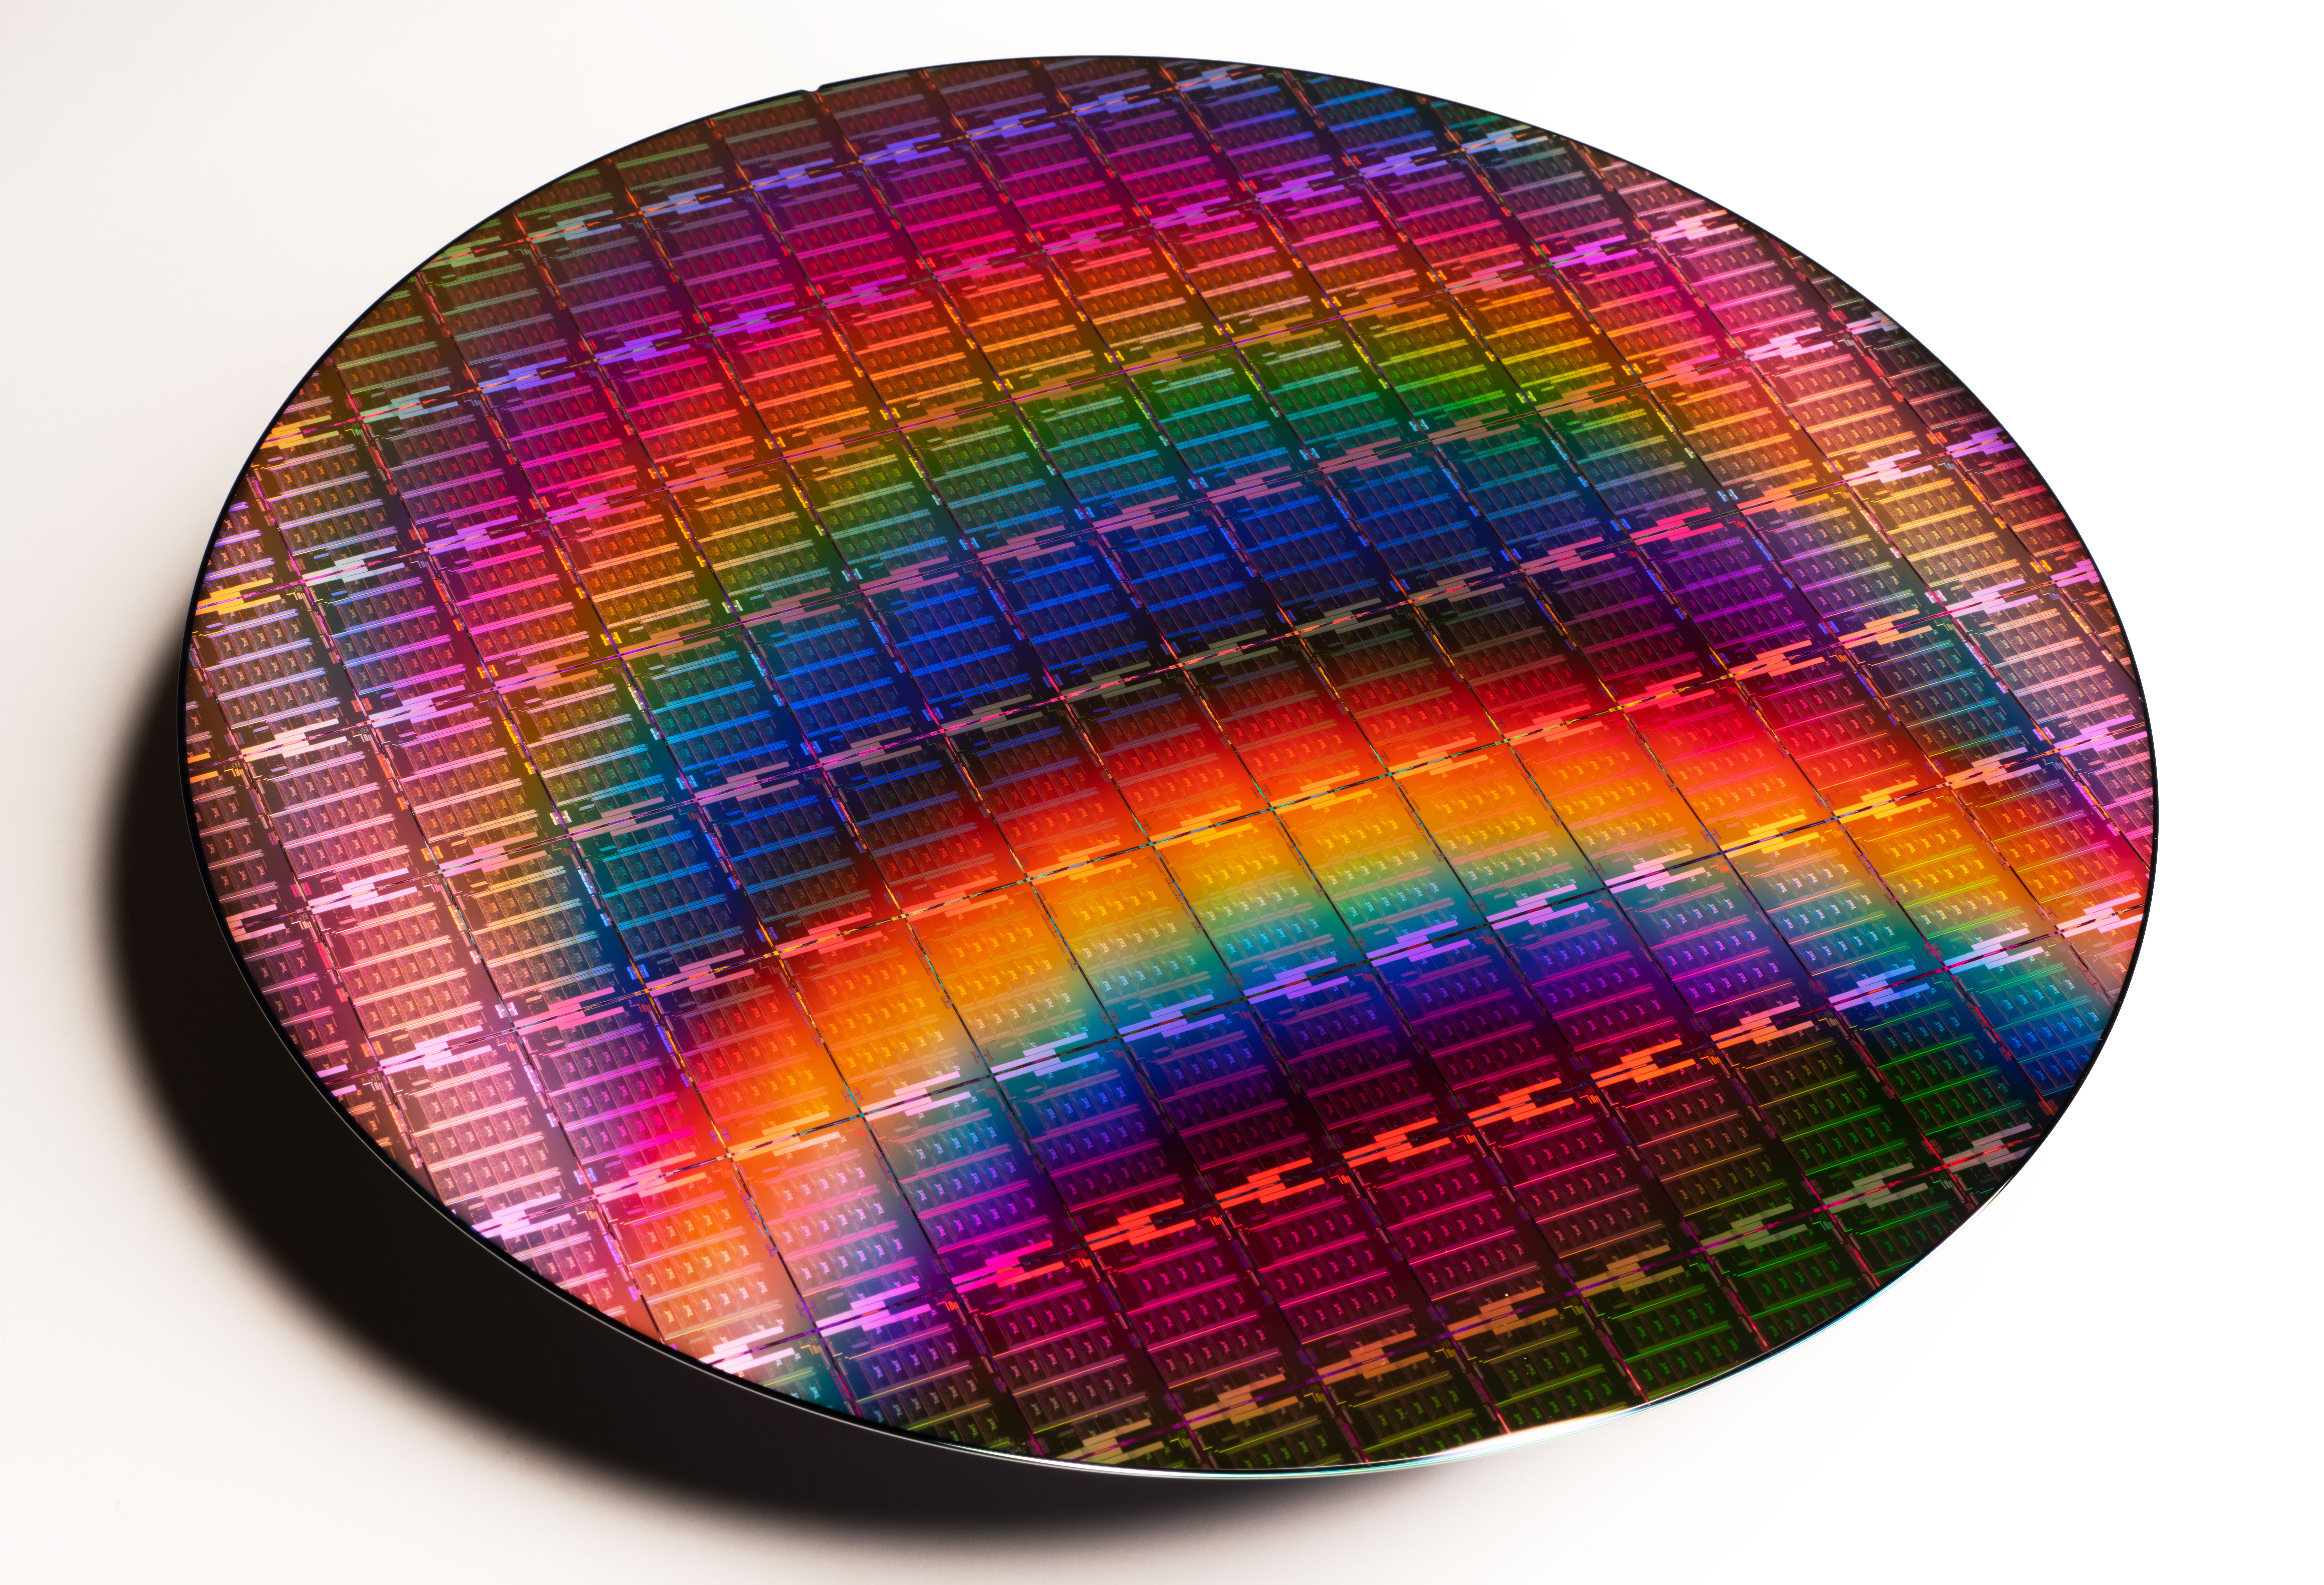 Intel-3rd-Gen-Xeon-Scalable-Wafer-2